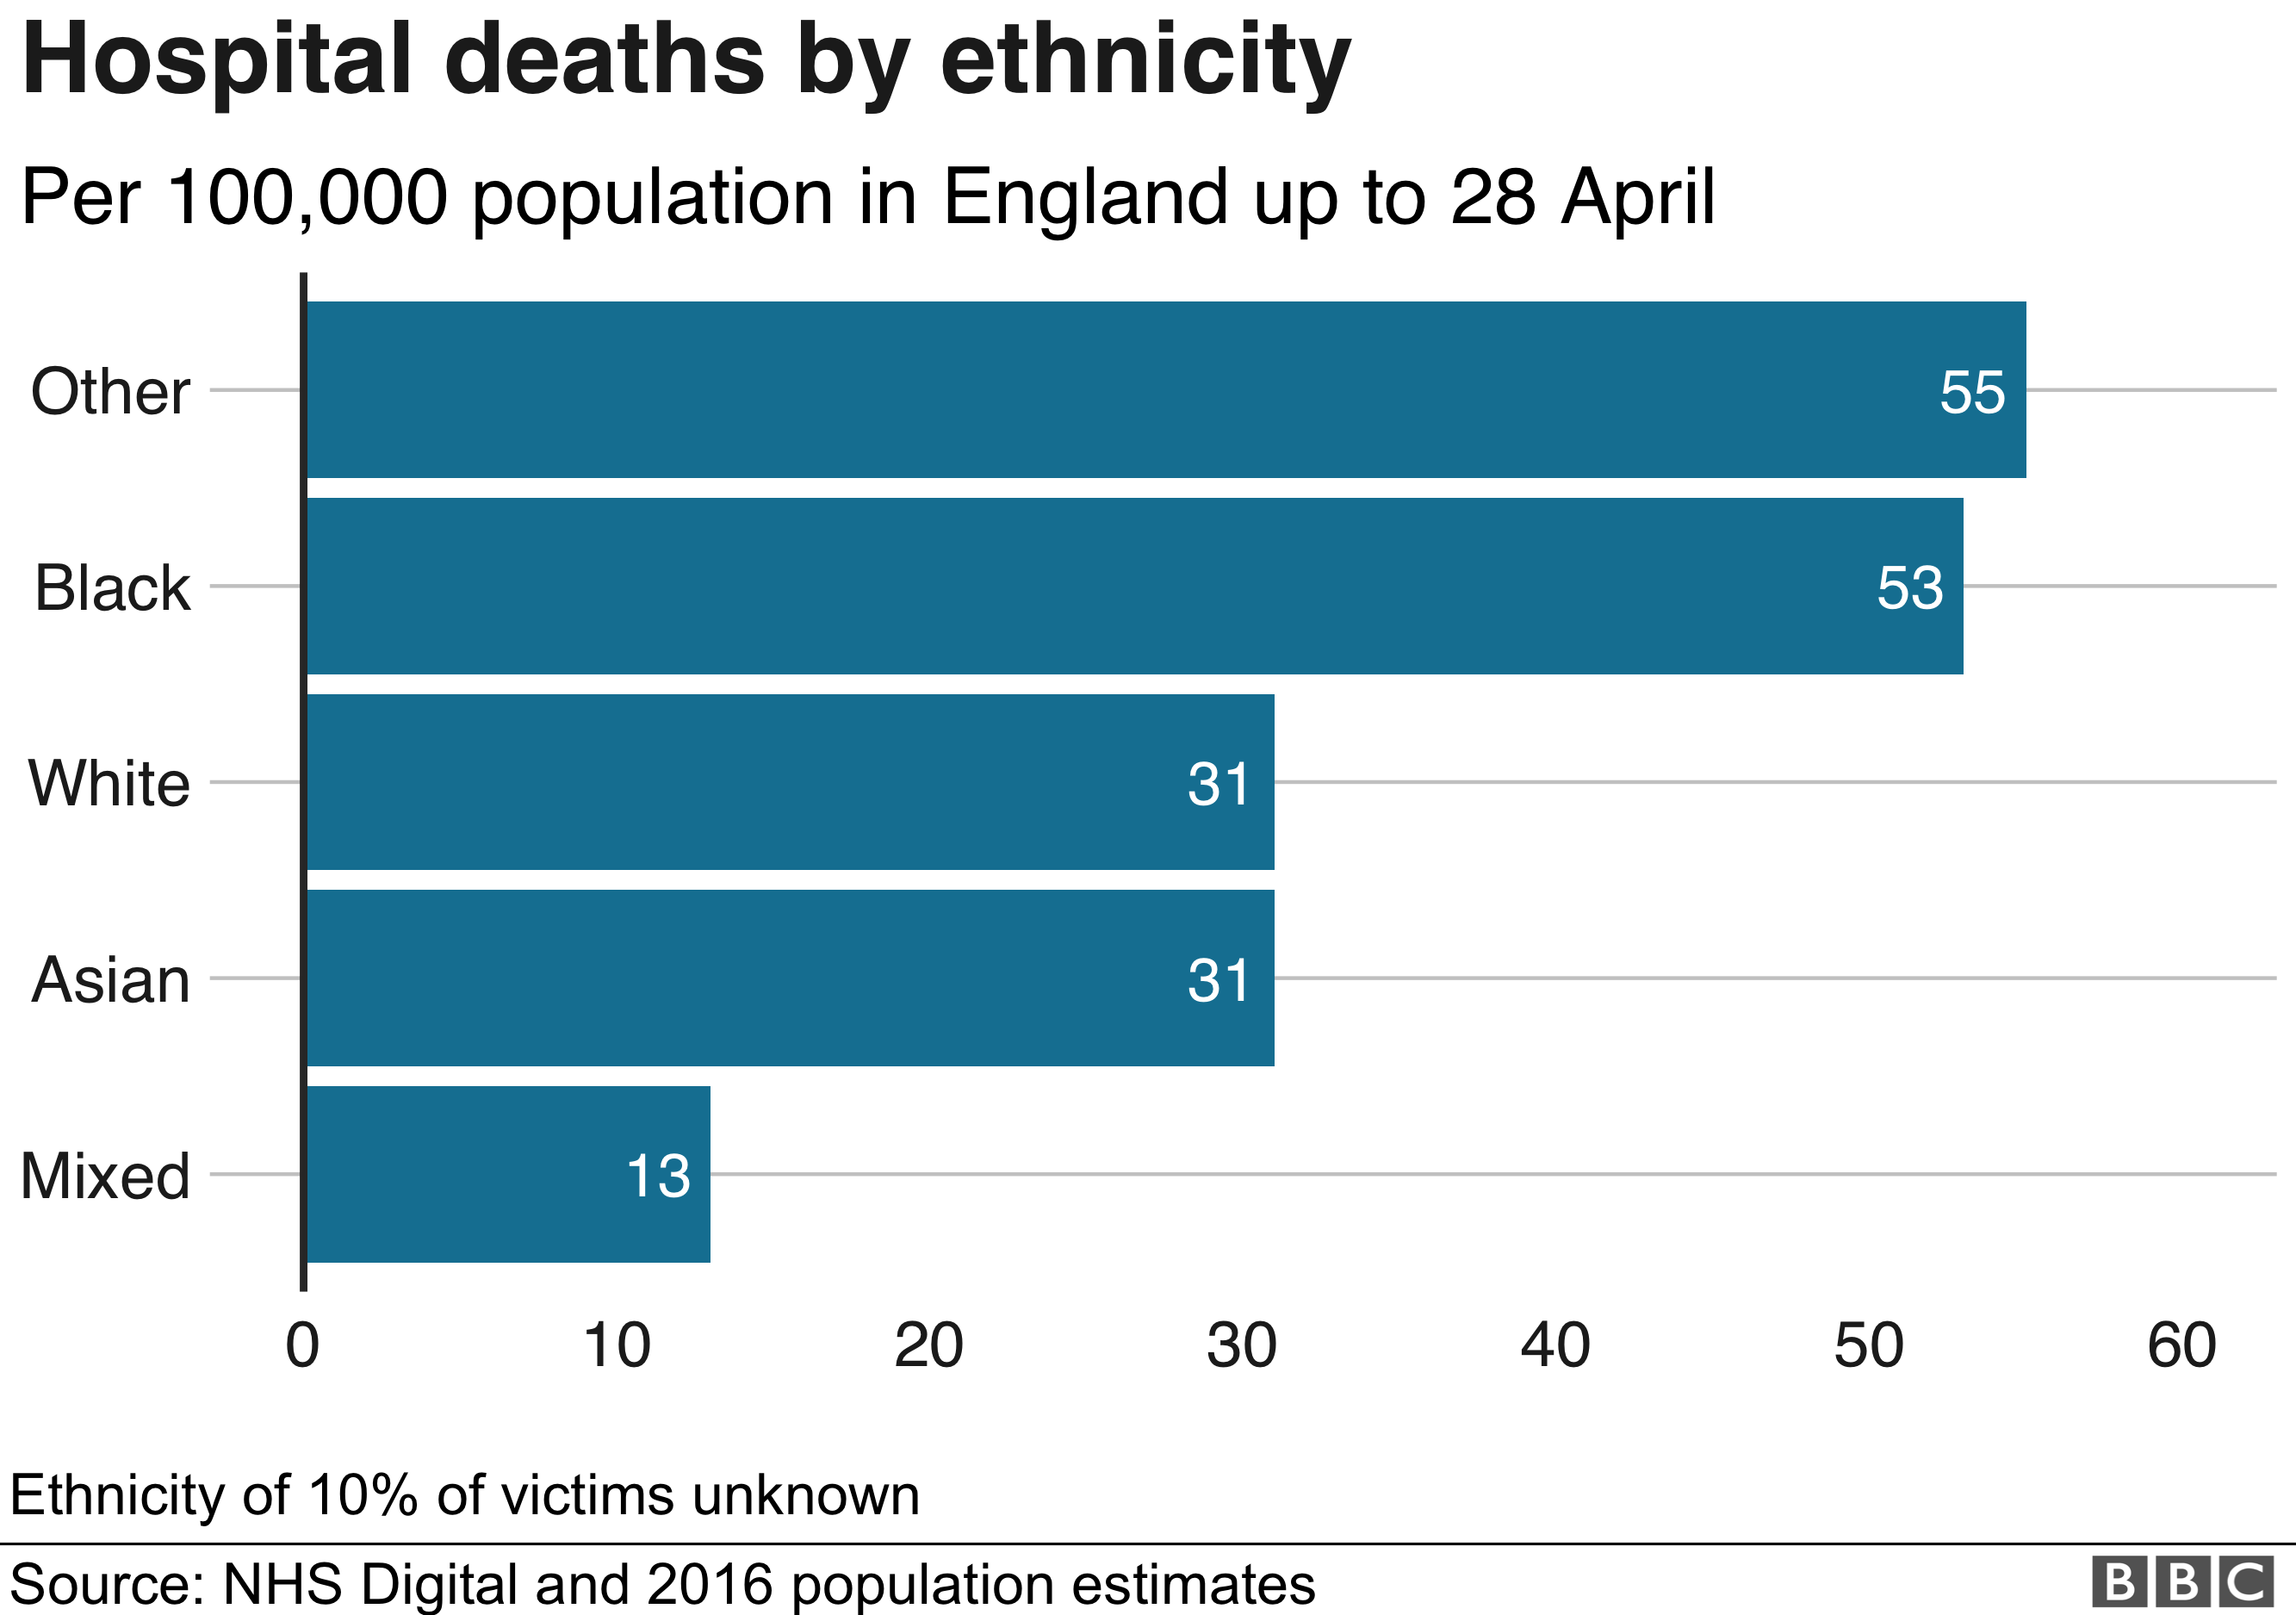 Chart showing deaths by ethnicity